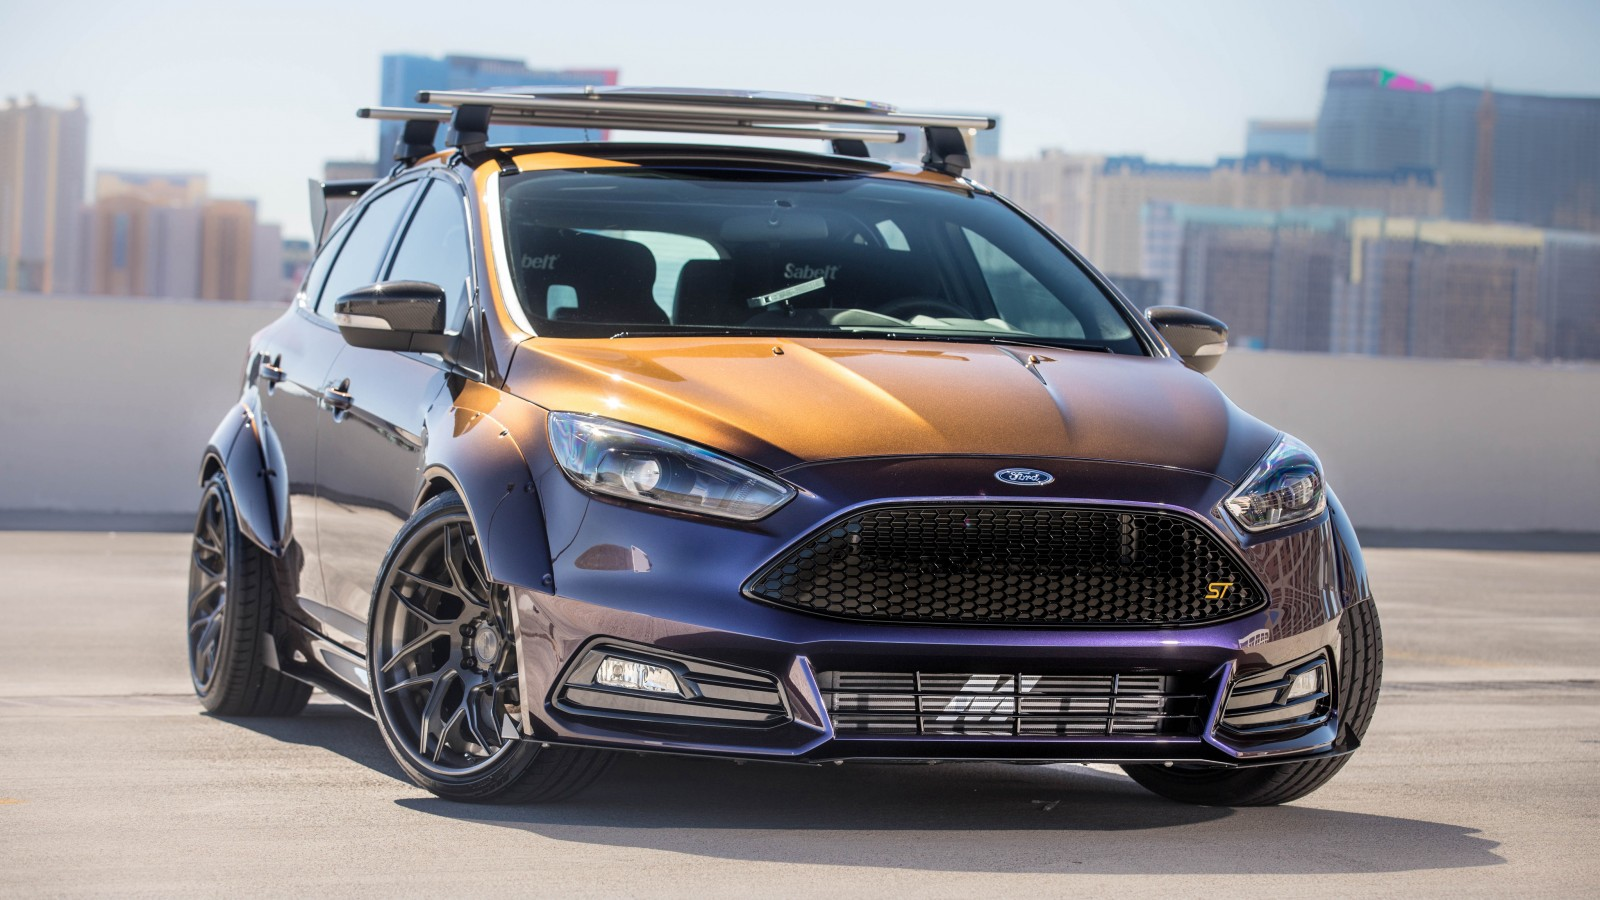 2017 ford focus st by blood type racing 4k wallpaper hd. Black Bedroom Furniture Sets. Home Design Ideas